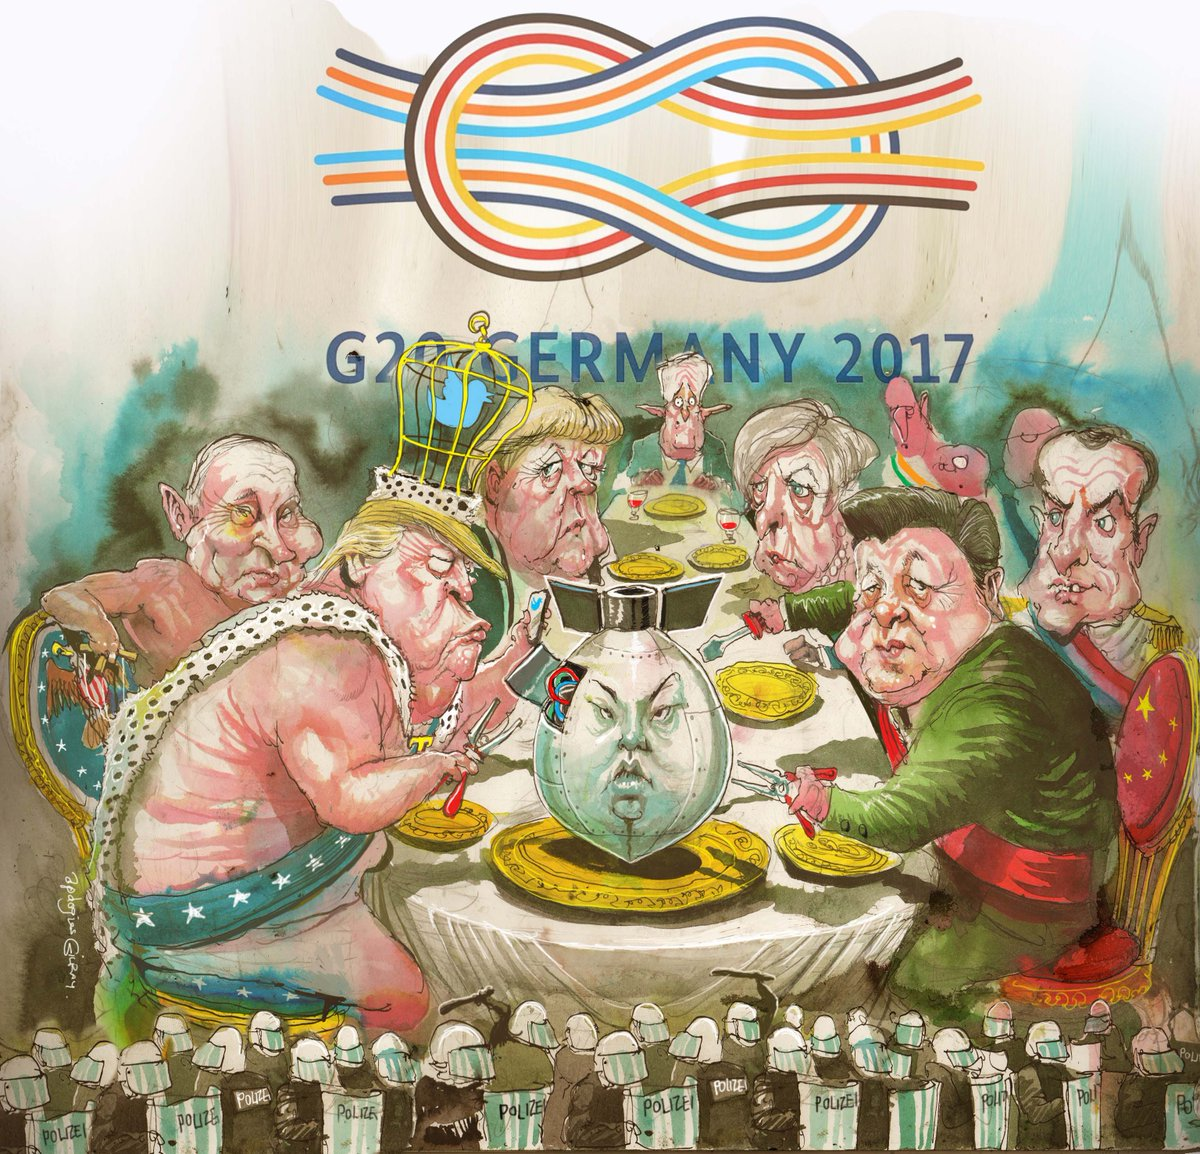 Dodgy Dinner guests at G20